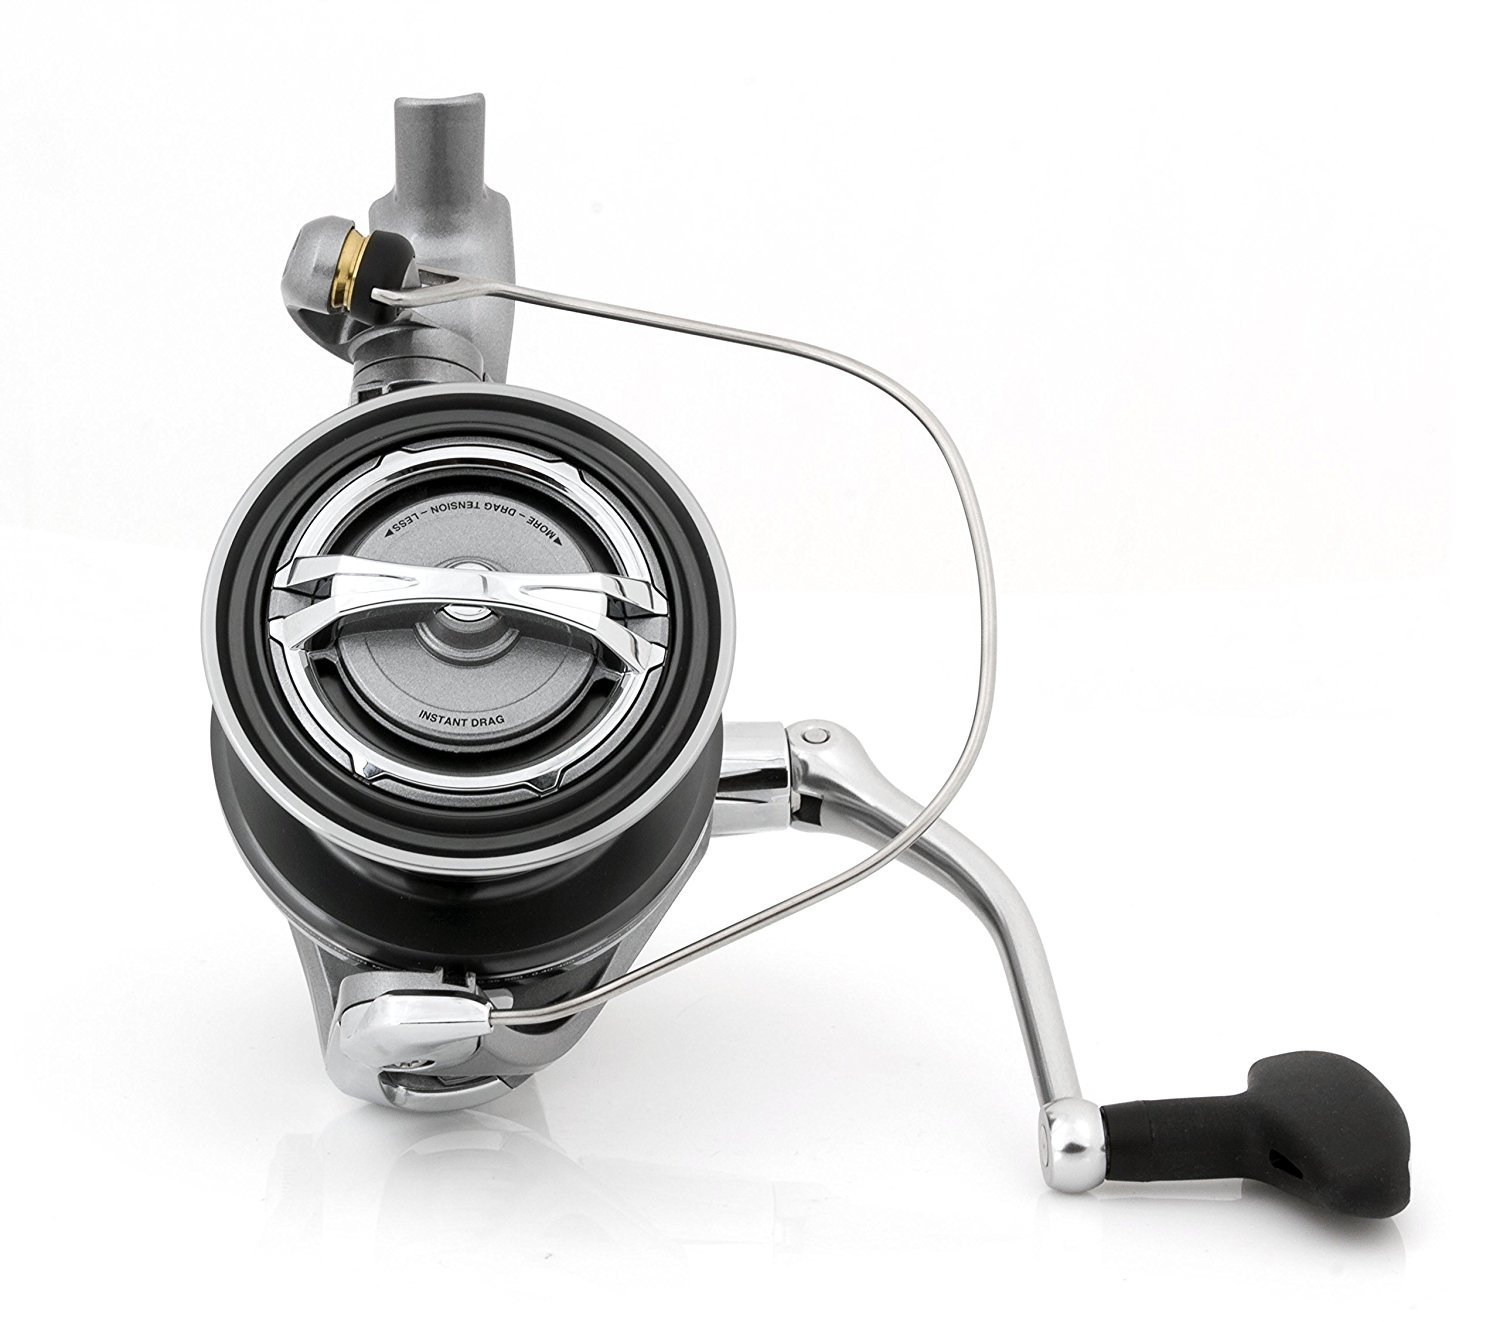 Buy Shimano Ultegra Xsd Big Pit Surfcasting Reel Online At Low Prices In India Amazon In